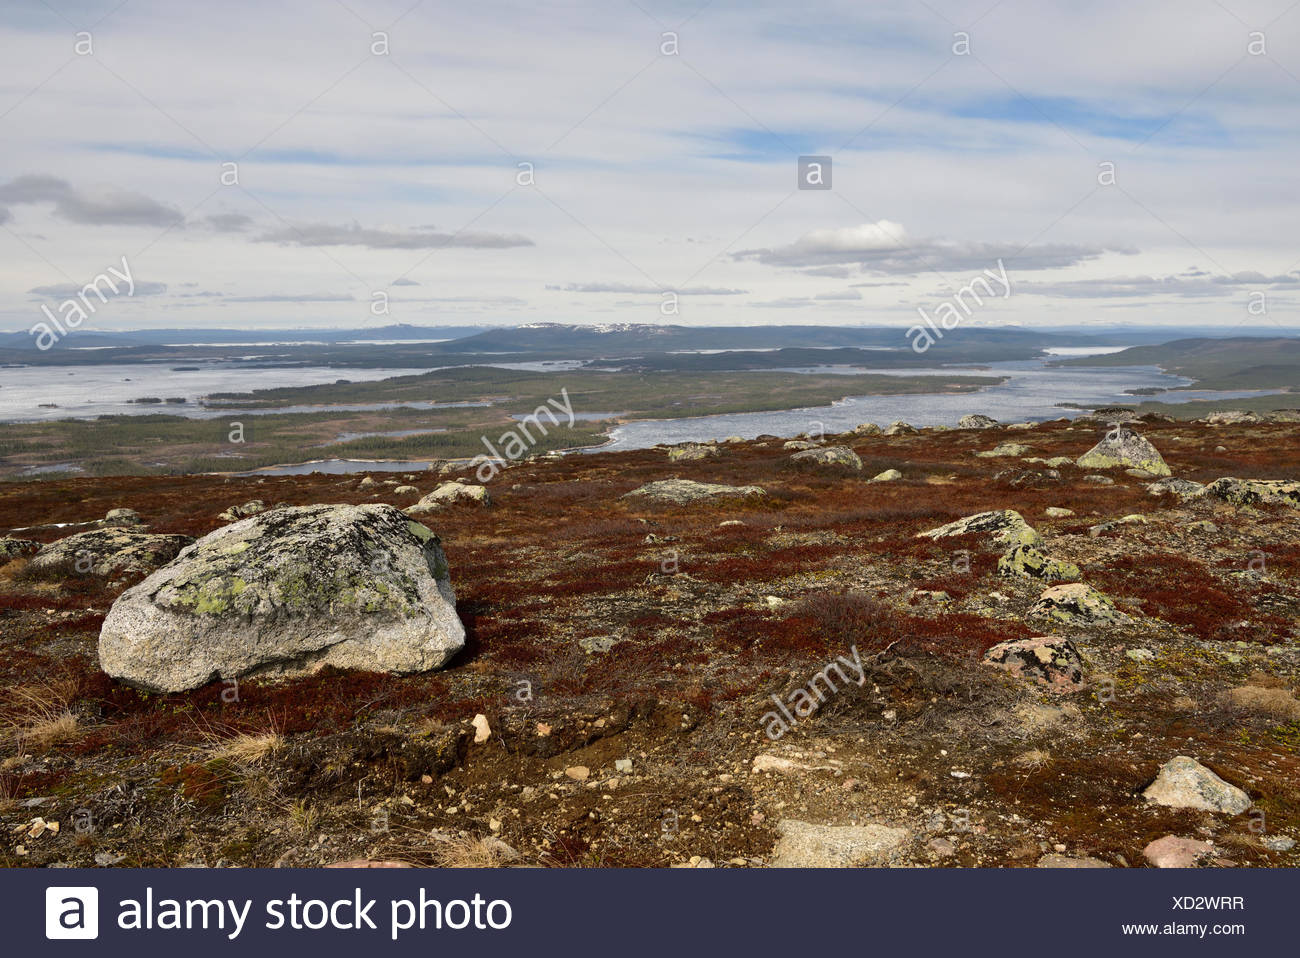 View, Uljabuouda, mountain, bolders, forest, lakes, Uddjaure, frozen, ice, mountains, snow, Arjeplog kommun, Norrbotten county, Lapland, Sweden *** Lo - Stock Image